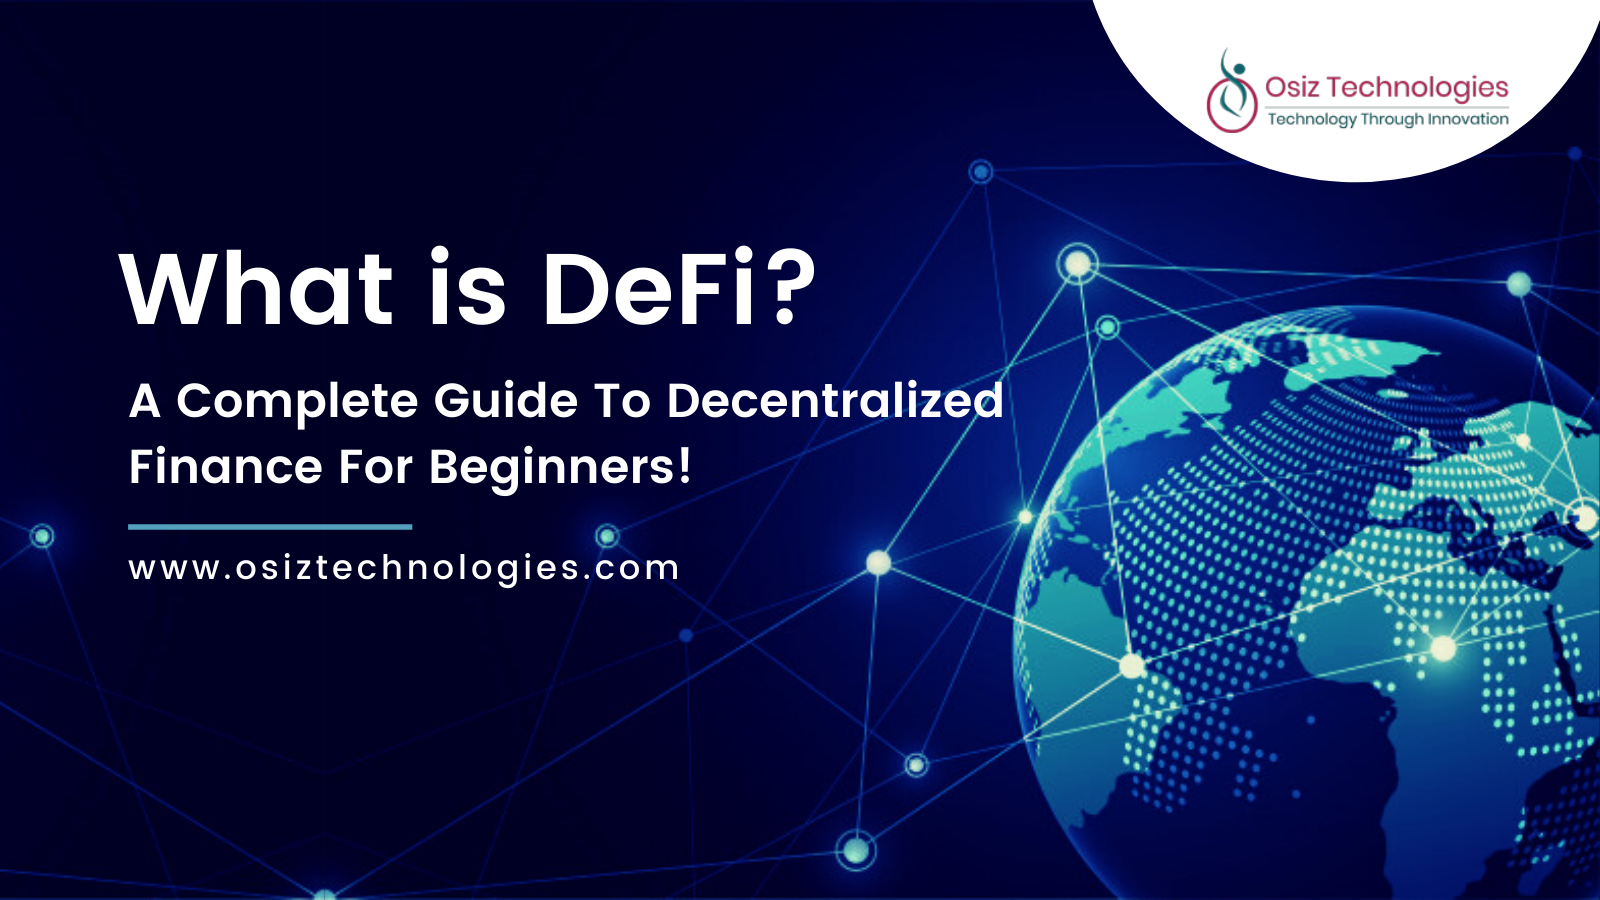 What is DeFi (Decentralized Finance)? A Beginner's Guide 2021